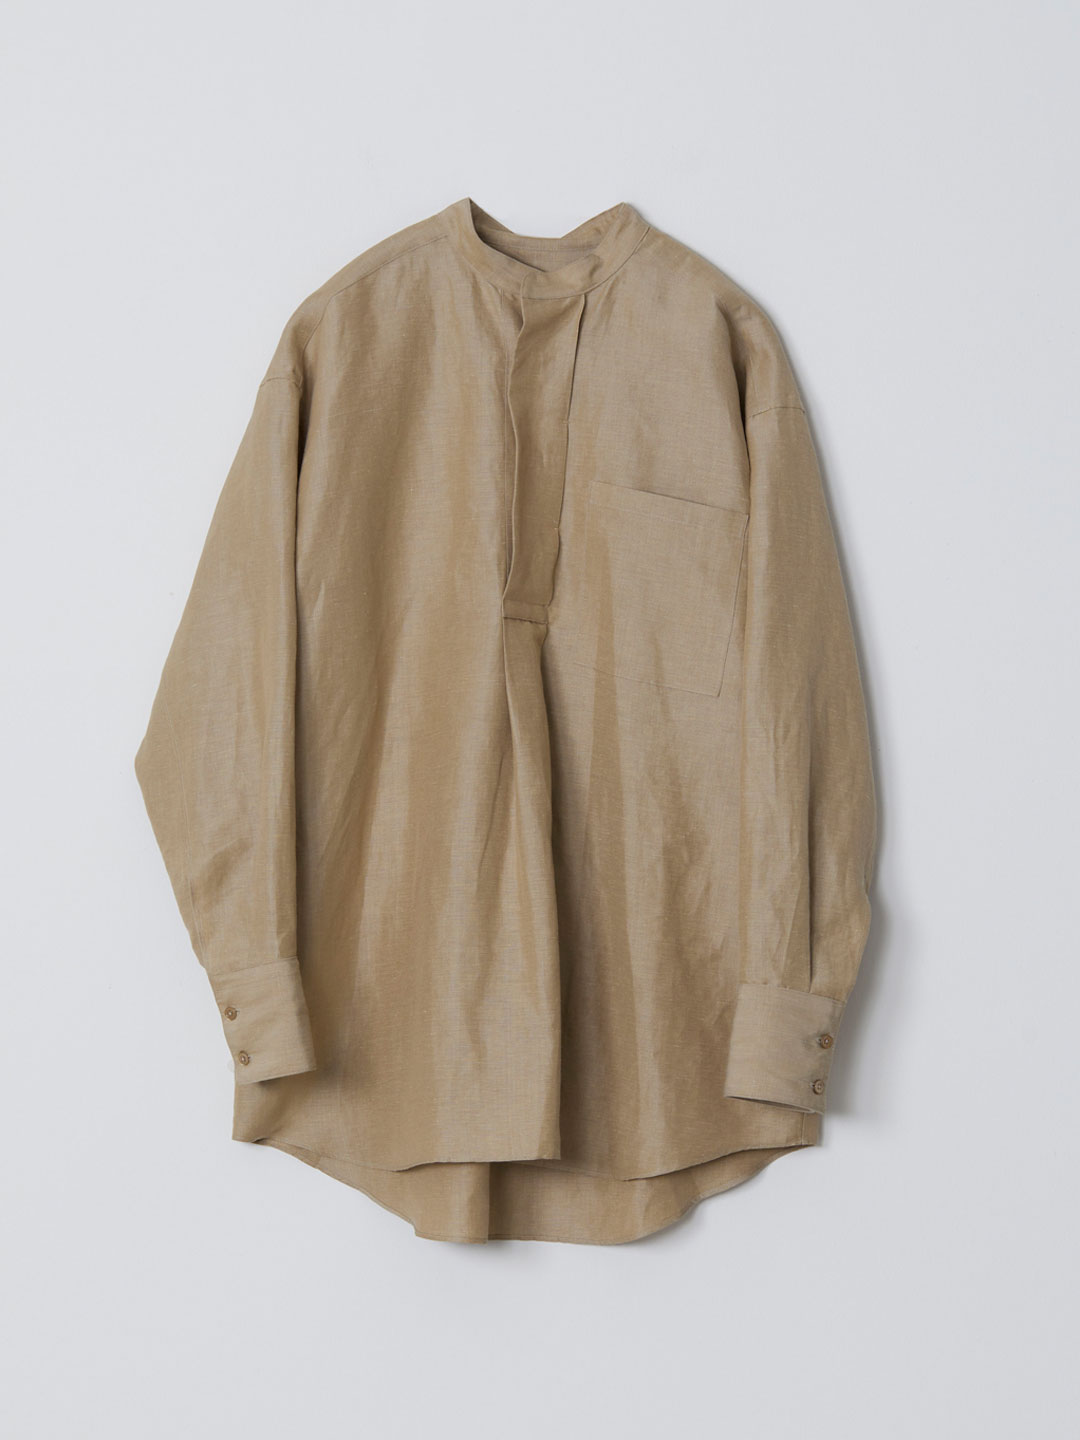 No 0220 Linen Silk Pull-Over Shirt  - Beige